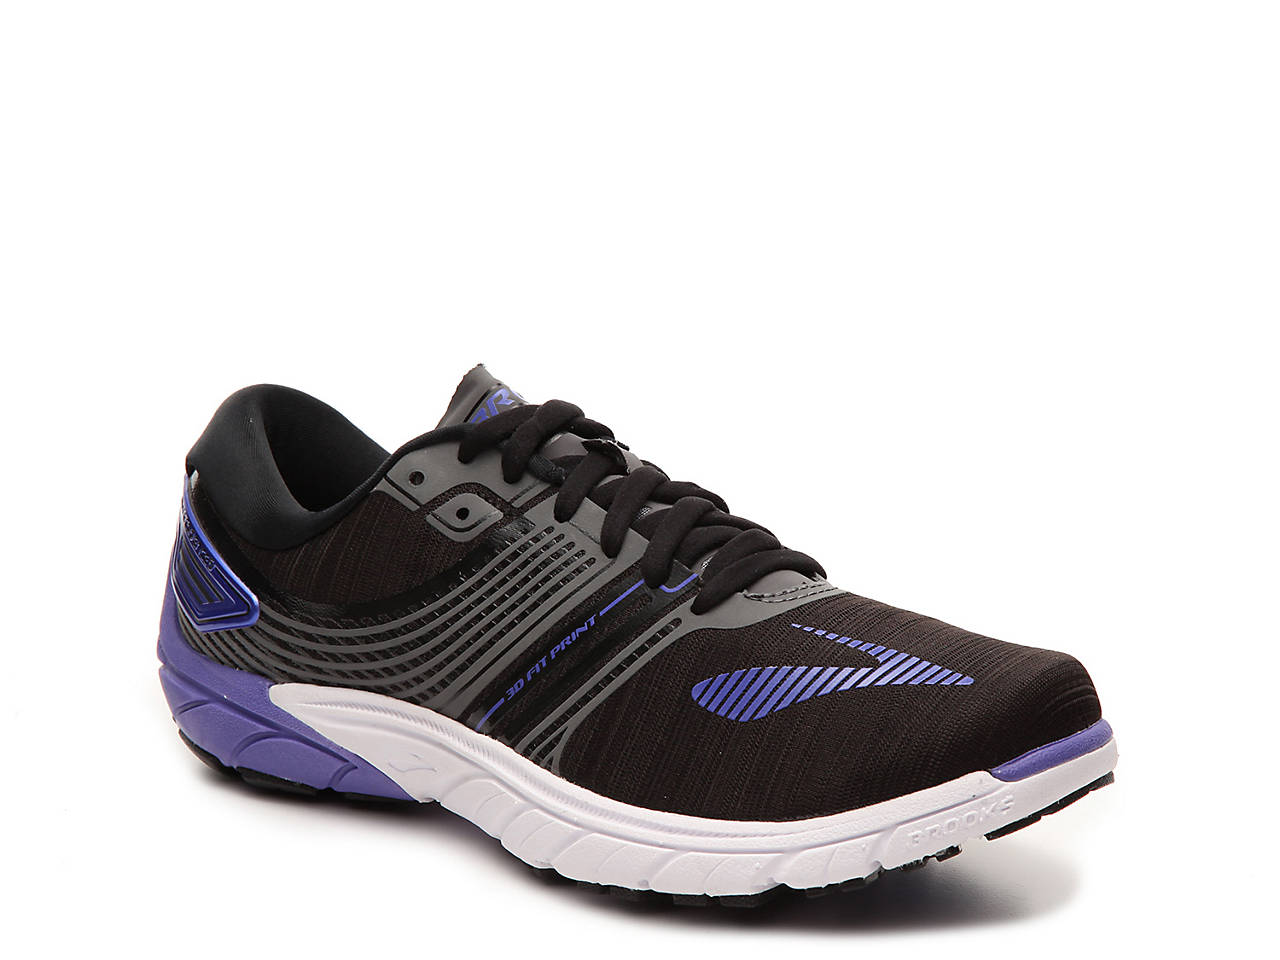 160afd8f70b Brooks PureCadence 6 Running Shoes - Women s Women s Shoes